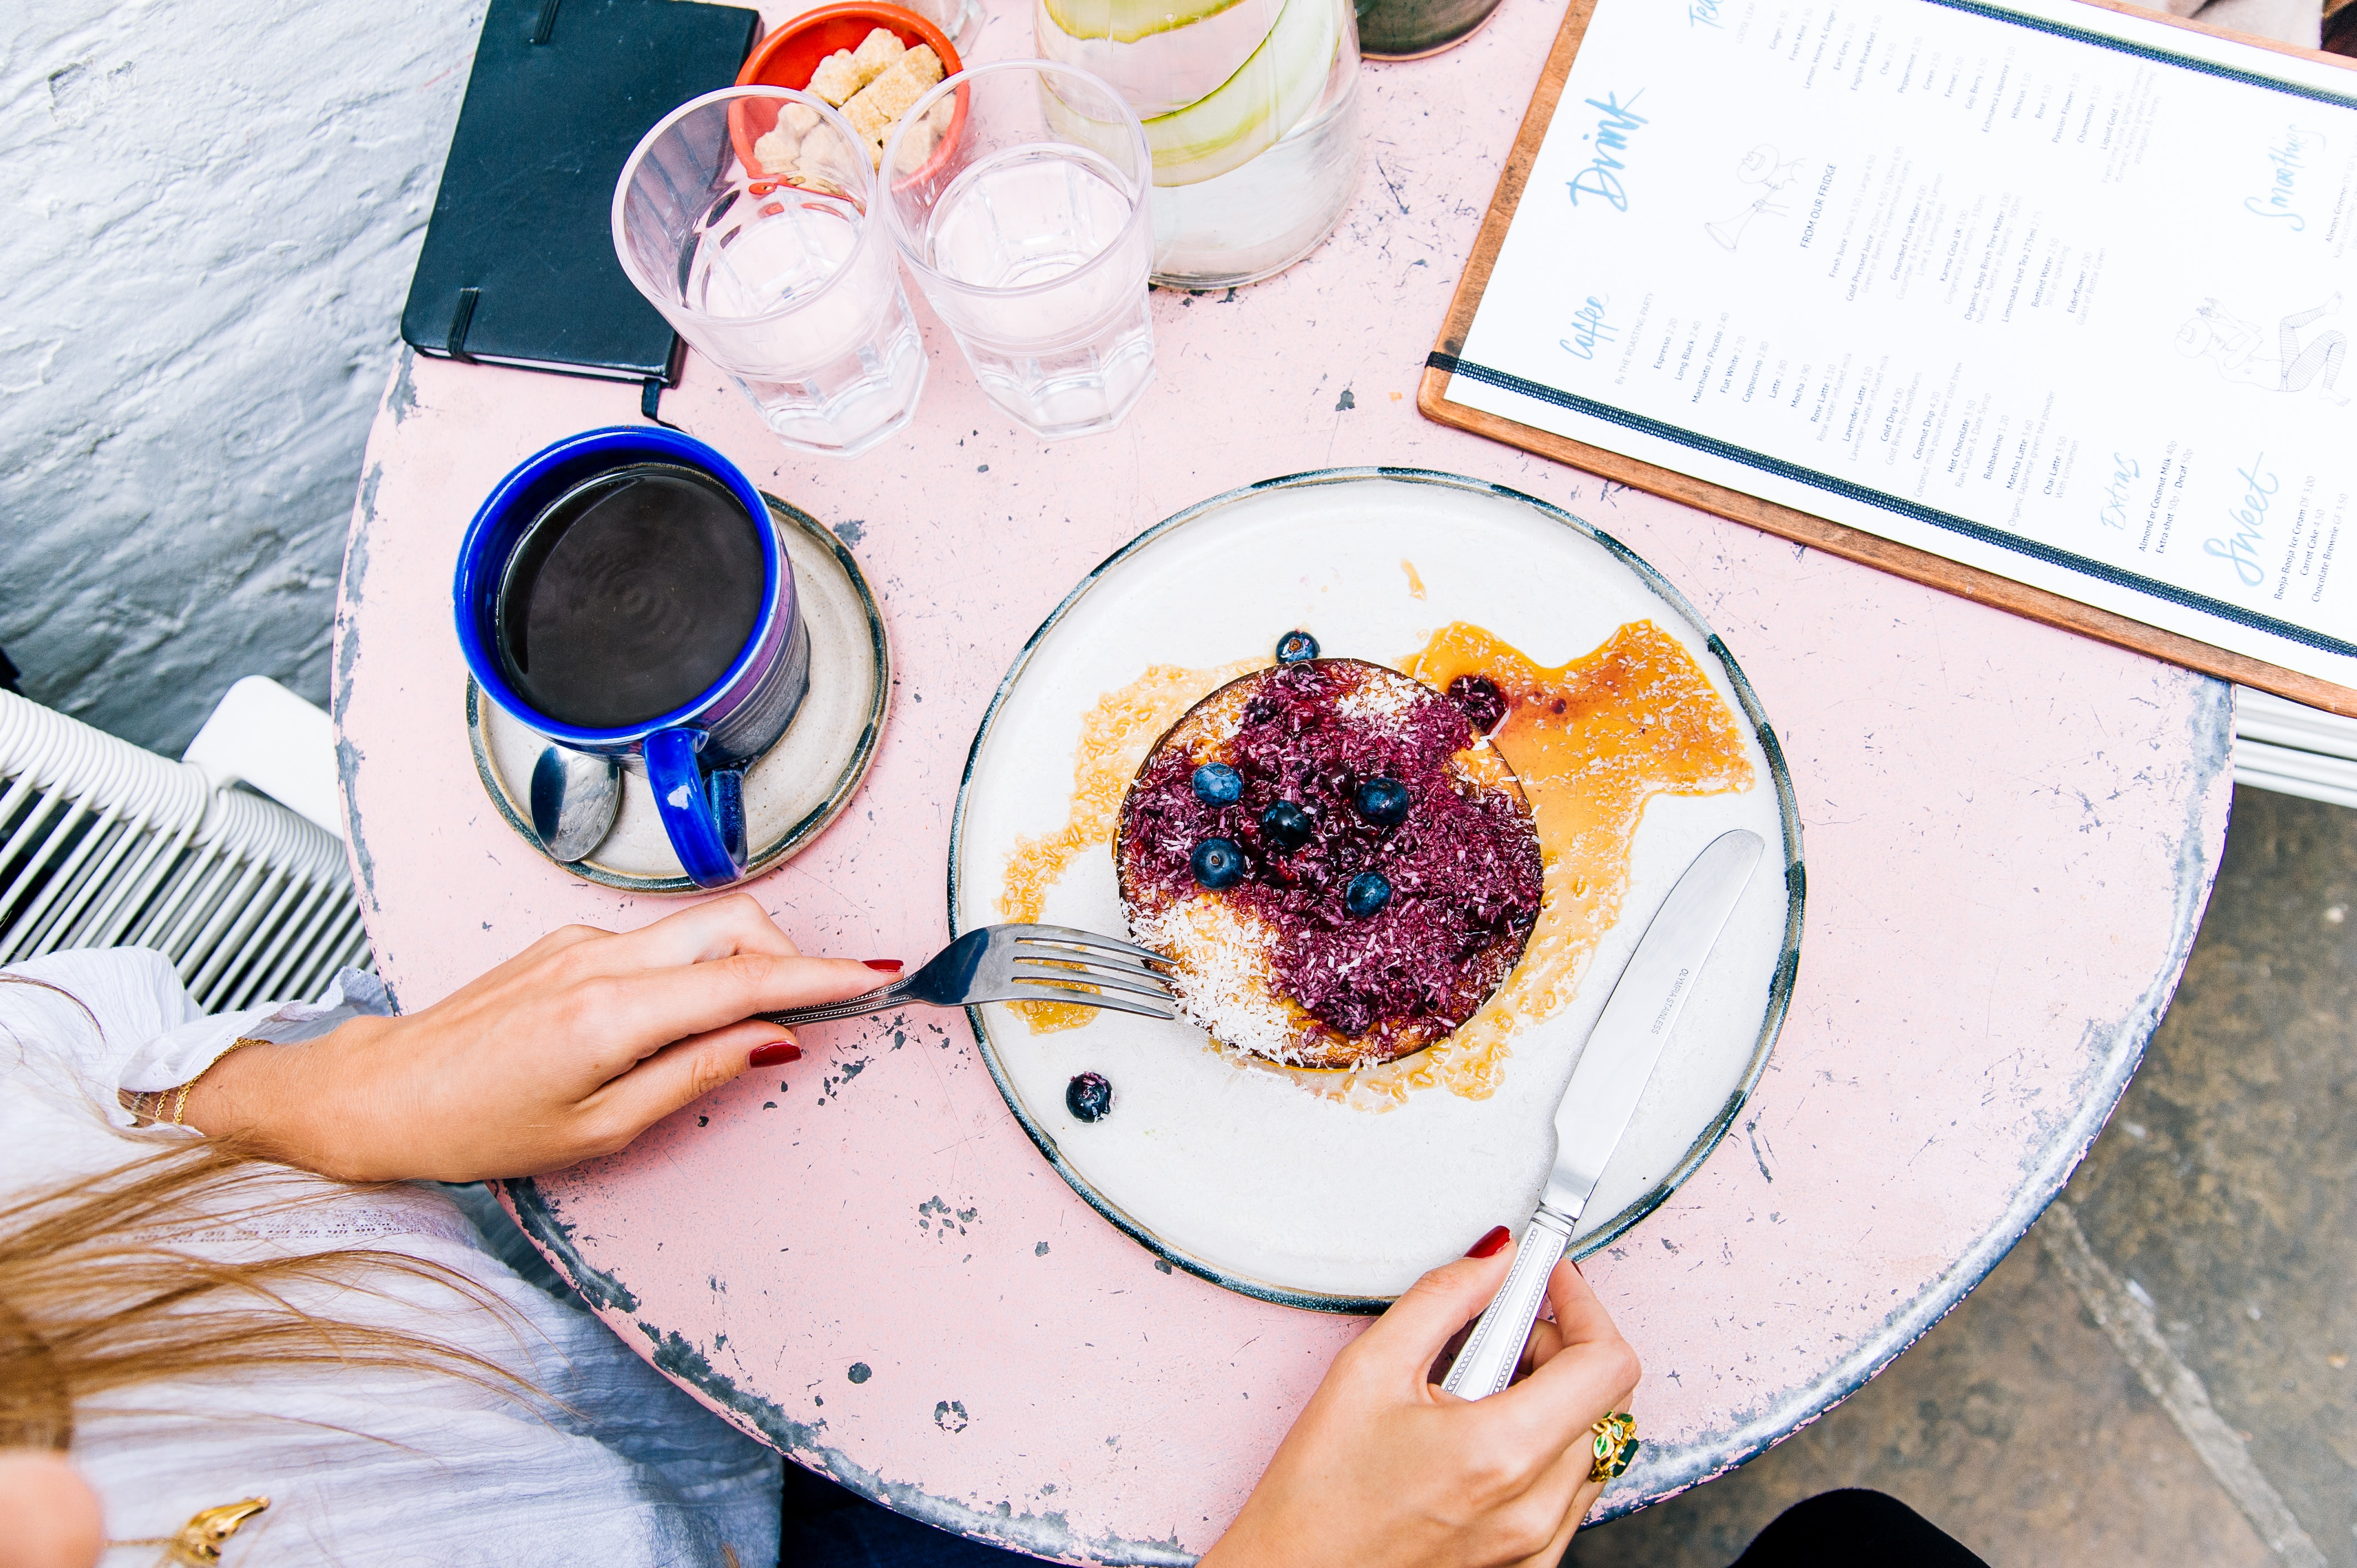 Woman Holding Spoon and Fork With Blackberries on Plate Beside Blue Ceramic Mug on White Wooden Table, Black coffee, Teaspoon, Tasty, Table, HQ Photo